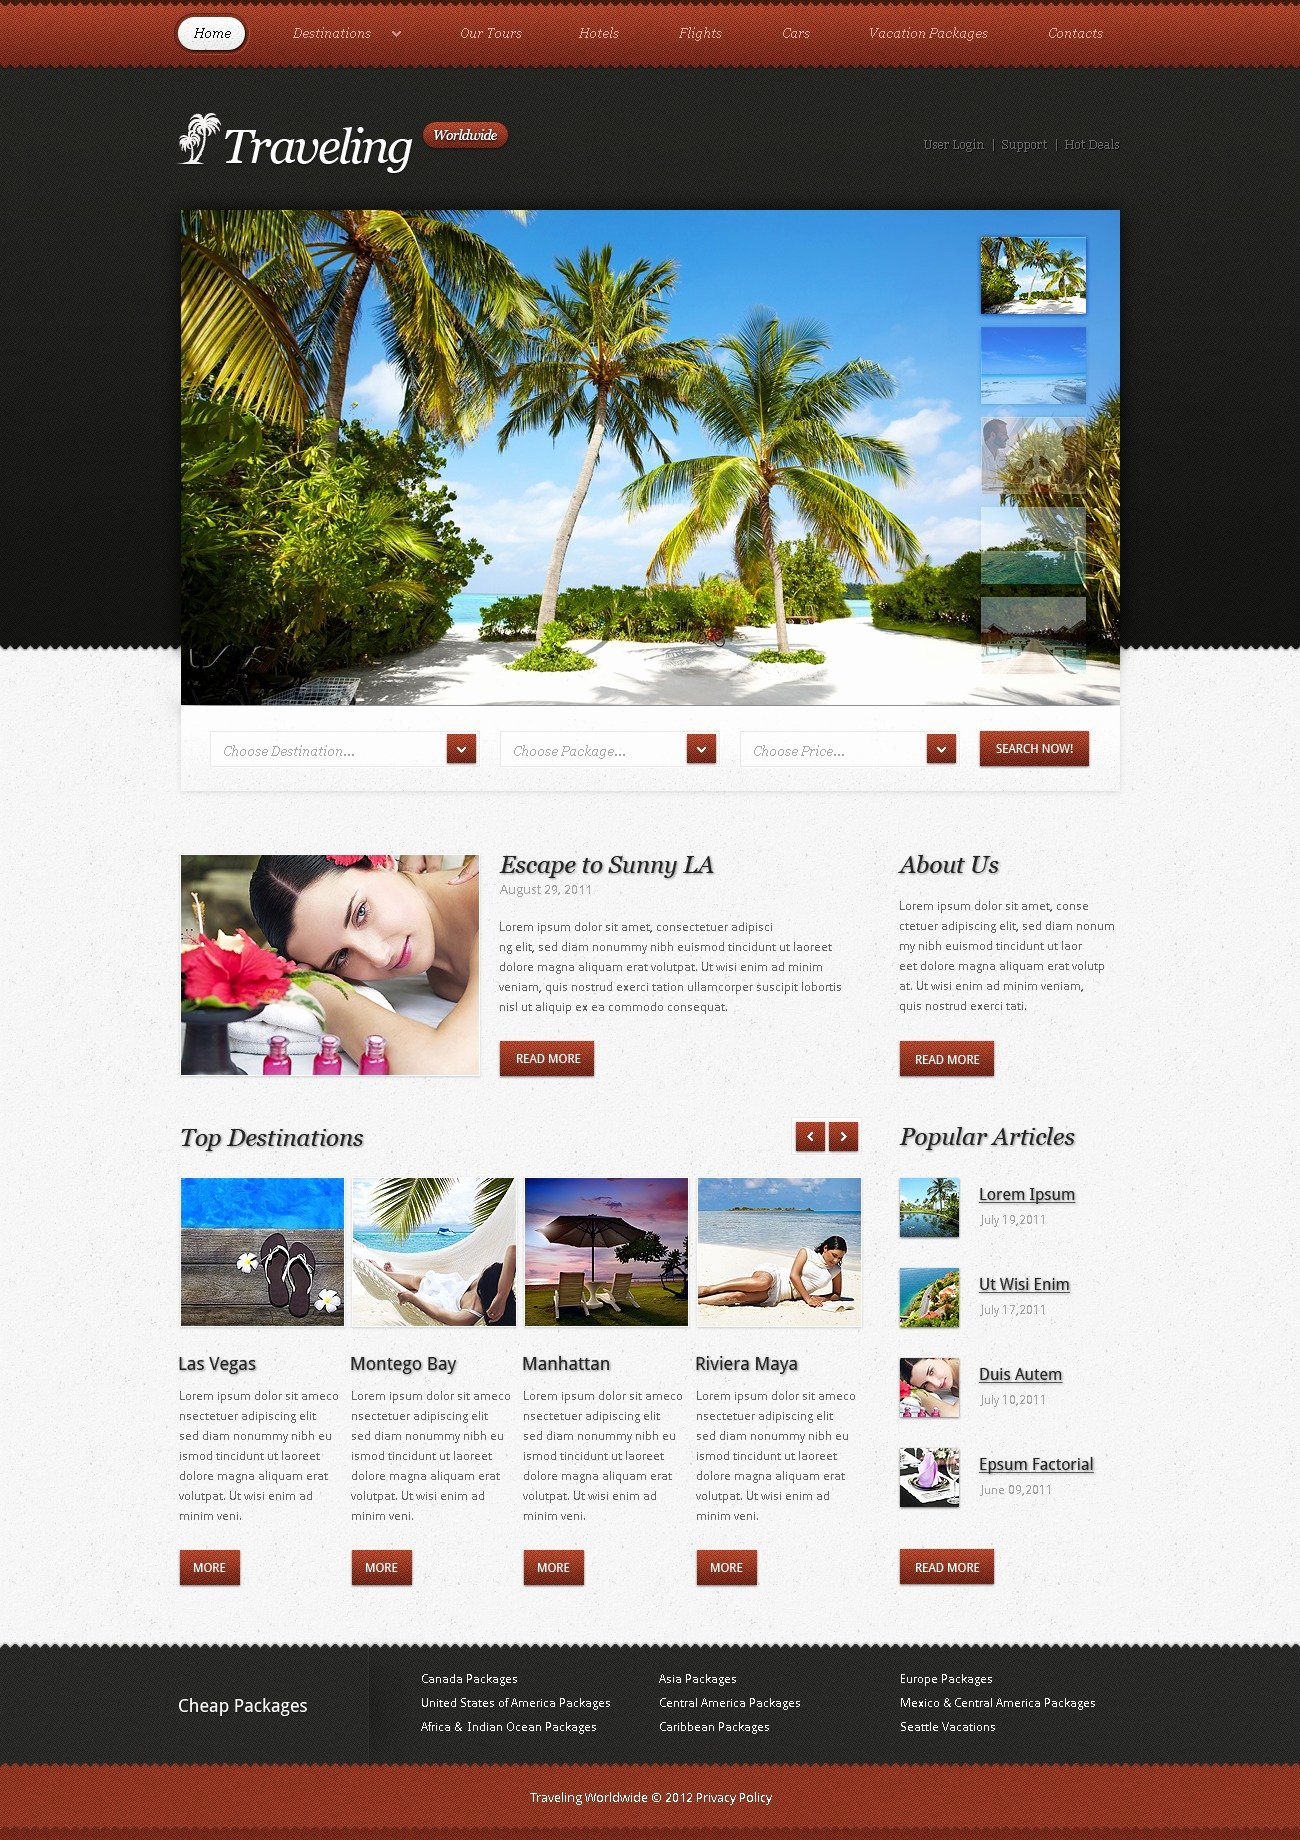 Travel Agency Website Template Inspirational Travel Agency Website Template